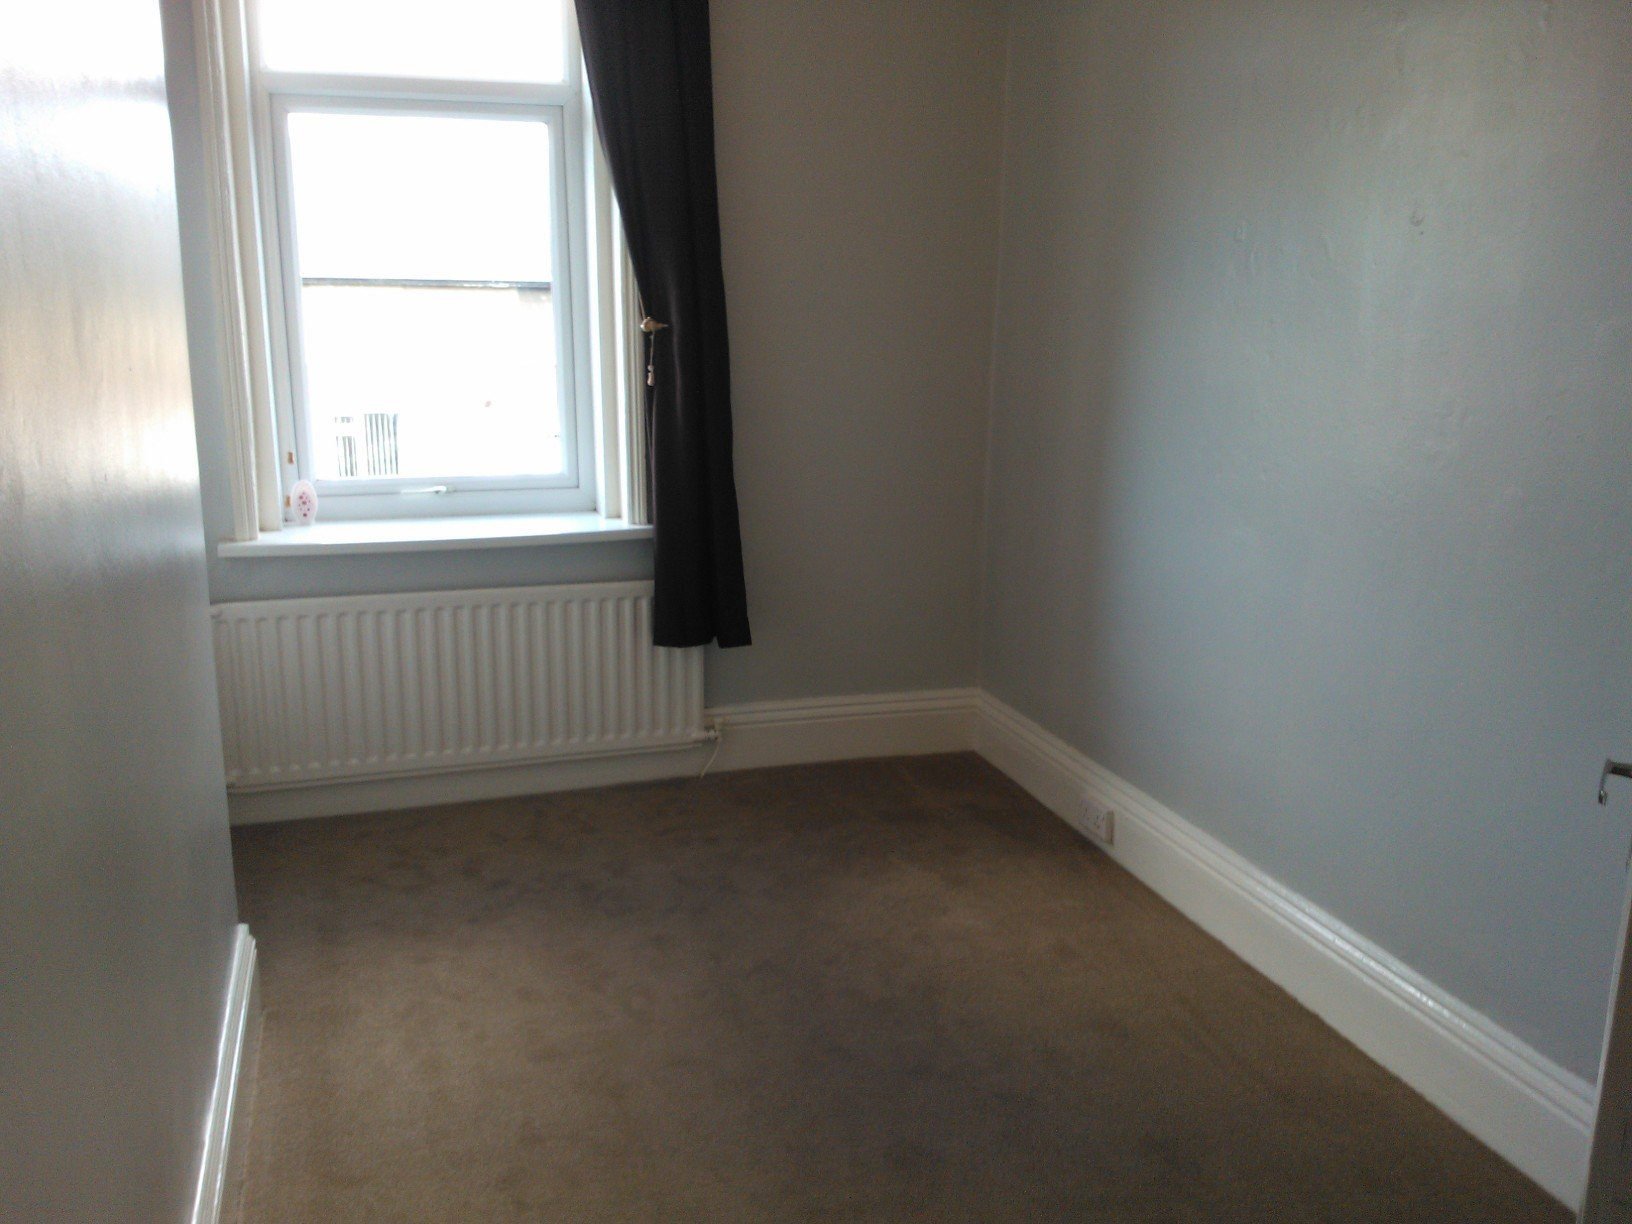 3 Bedroom Unfurnished Maisonette To On Cooperative Terrace Palmersville Newcastle Upon Tyne